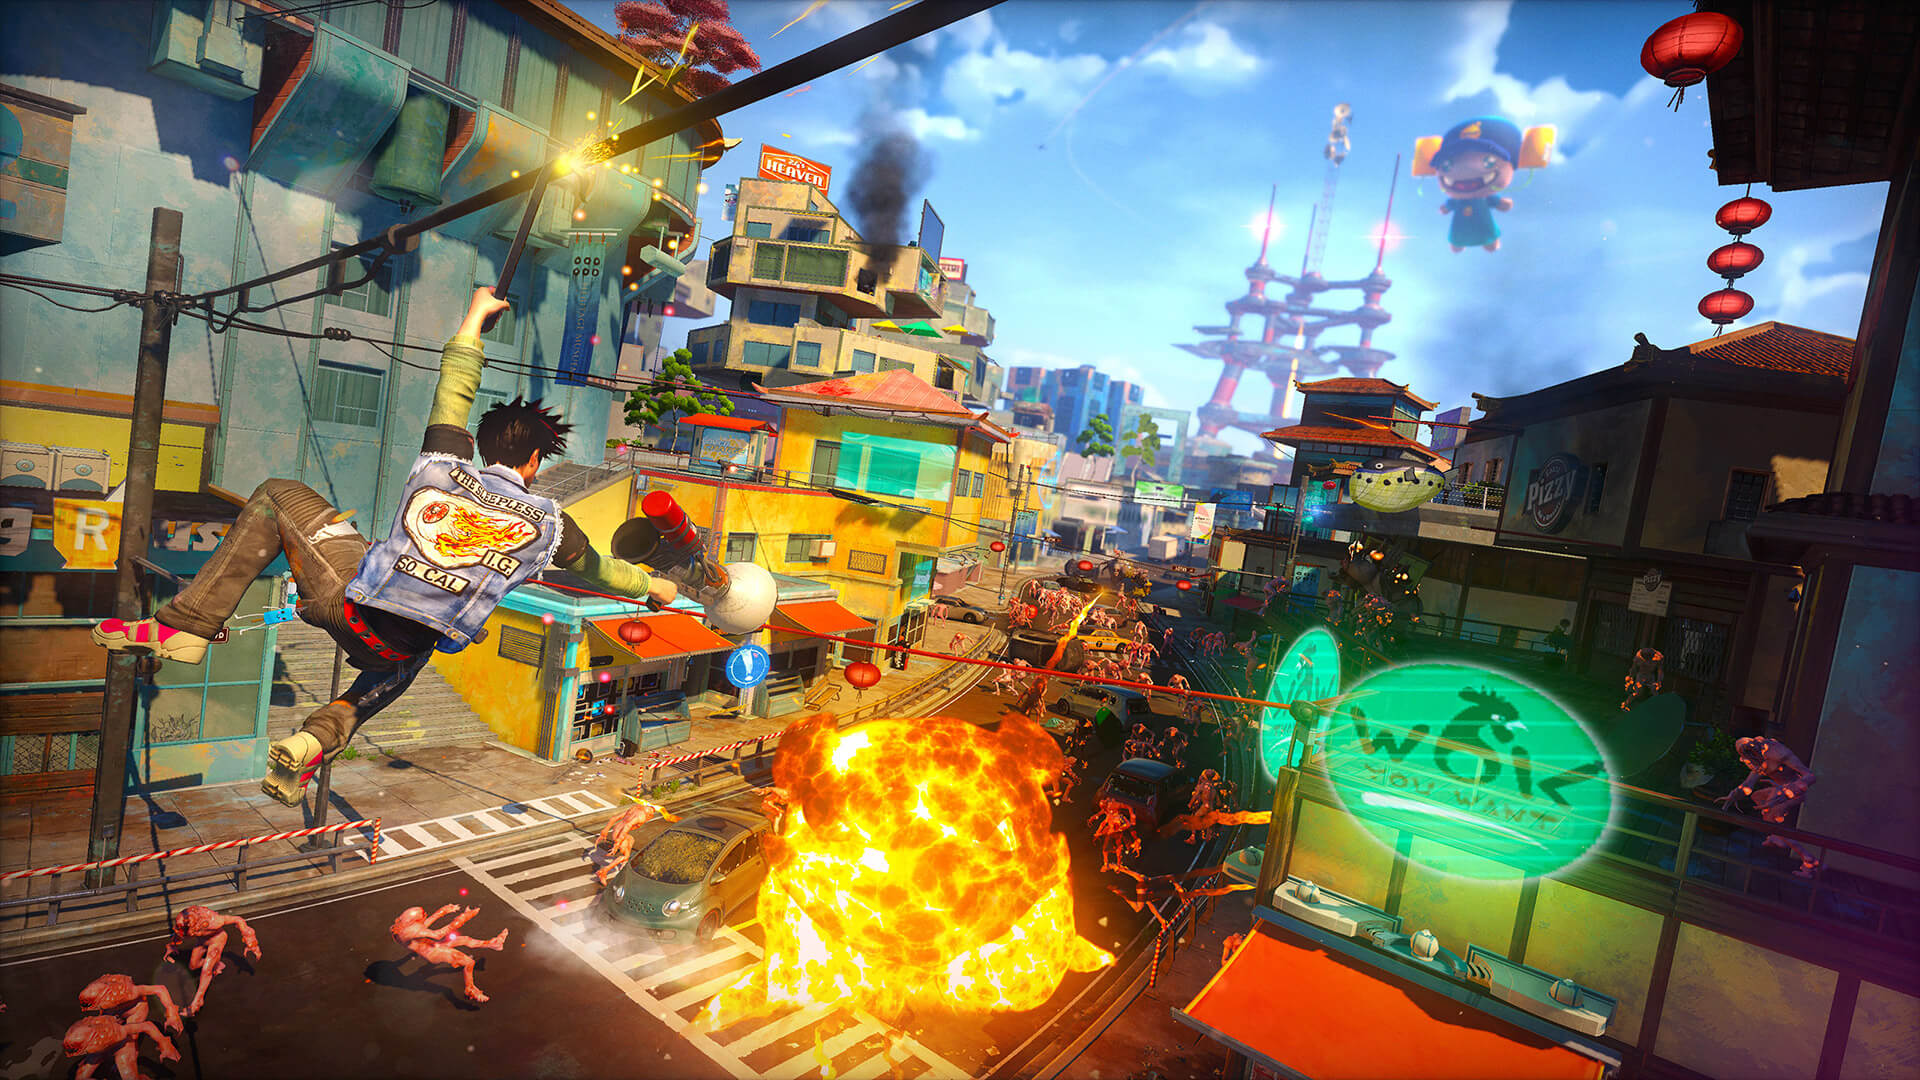 Sunset Overdrive PC Performance Analysis - DSOGaming